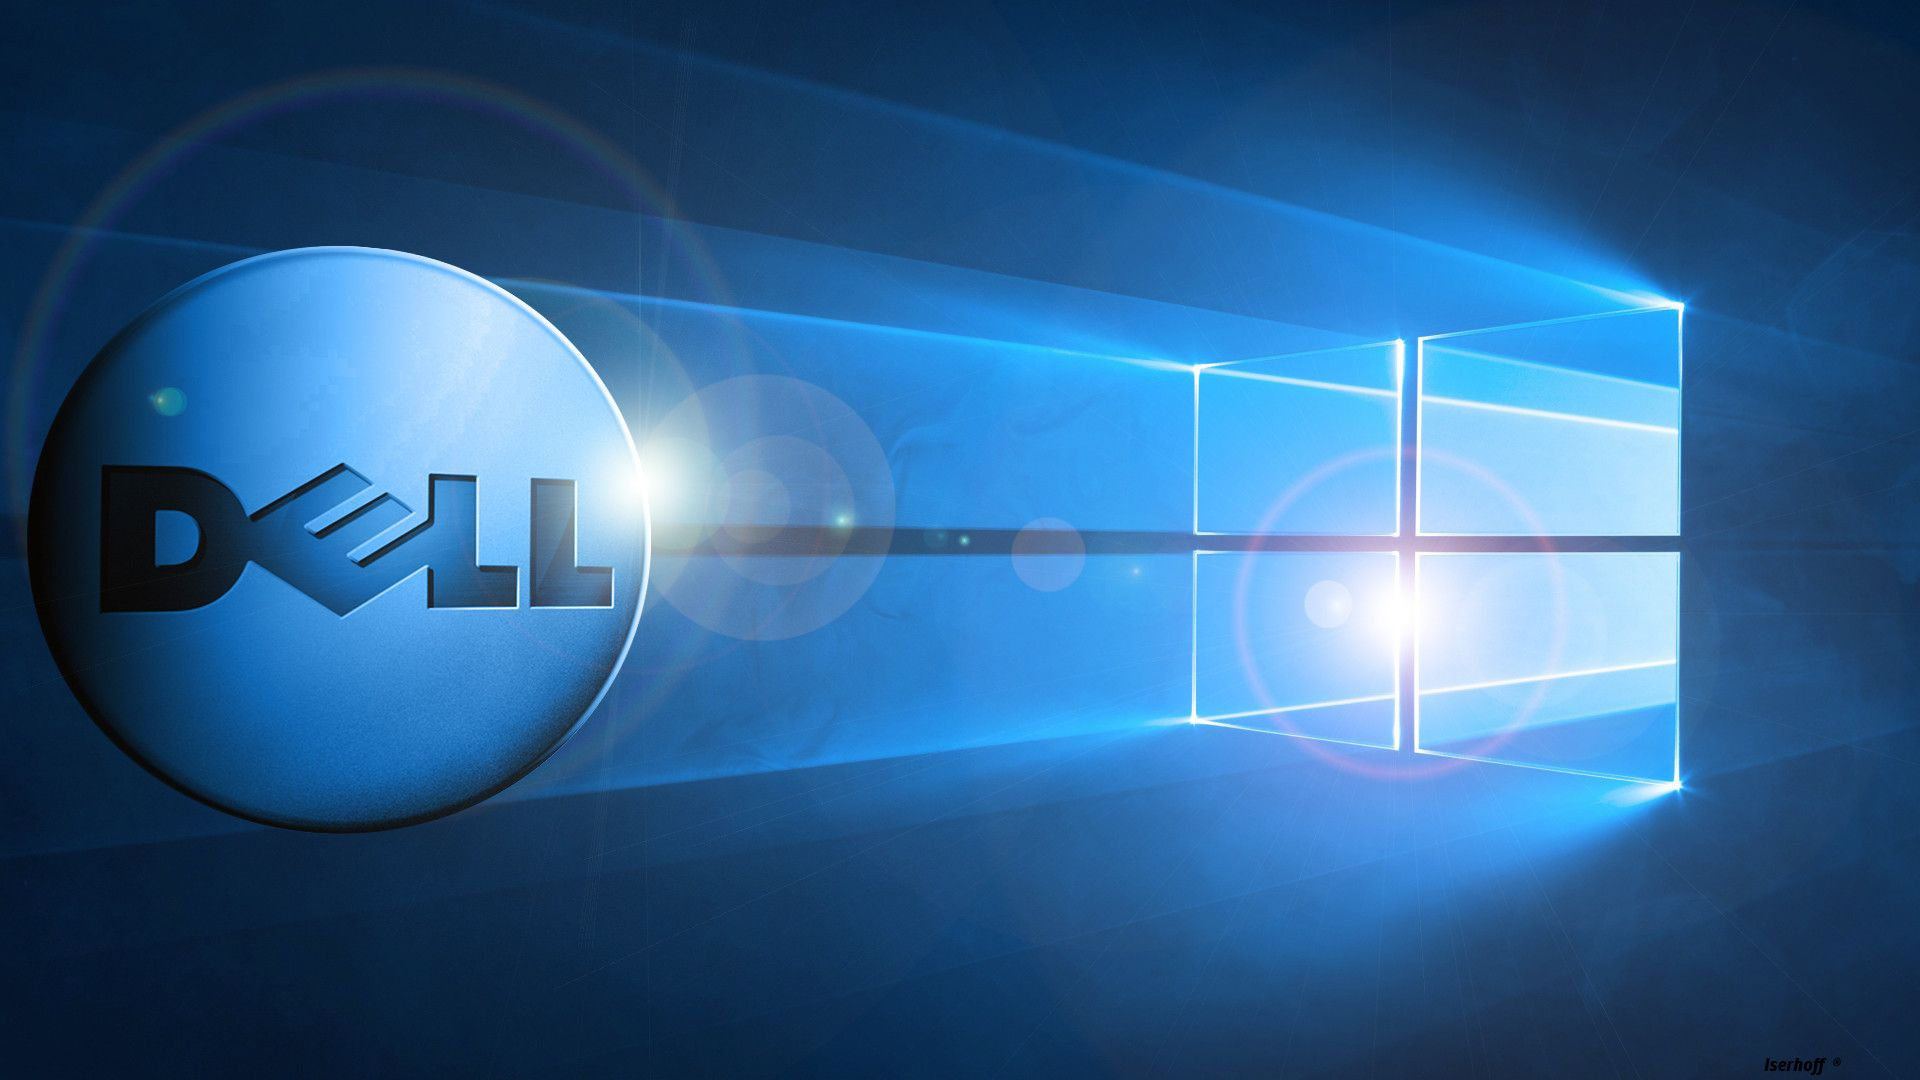 4k Wallpaper For Dell Laptop In 2020 Wallpaper Windows 10 Windows 10 Wallpaper